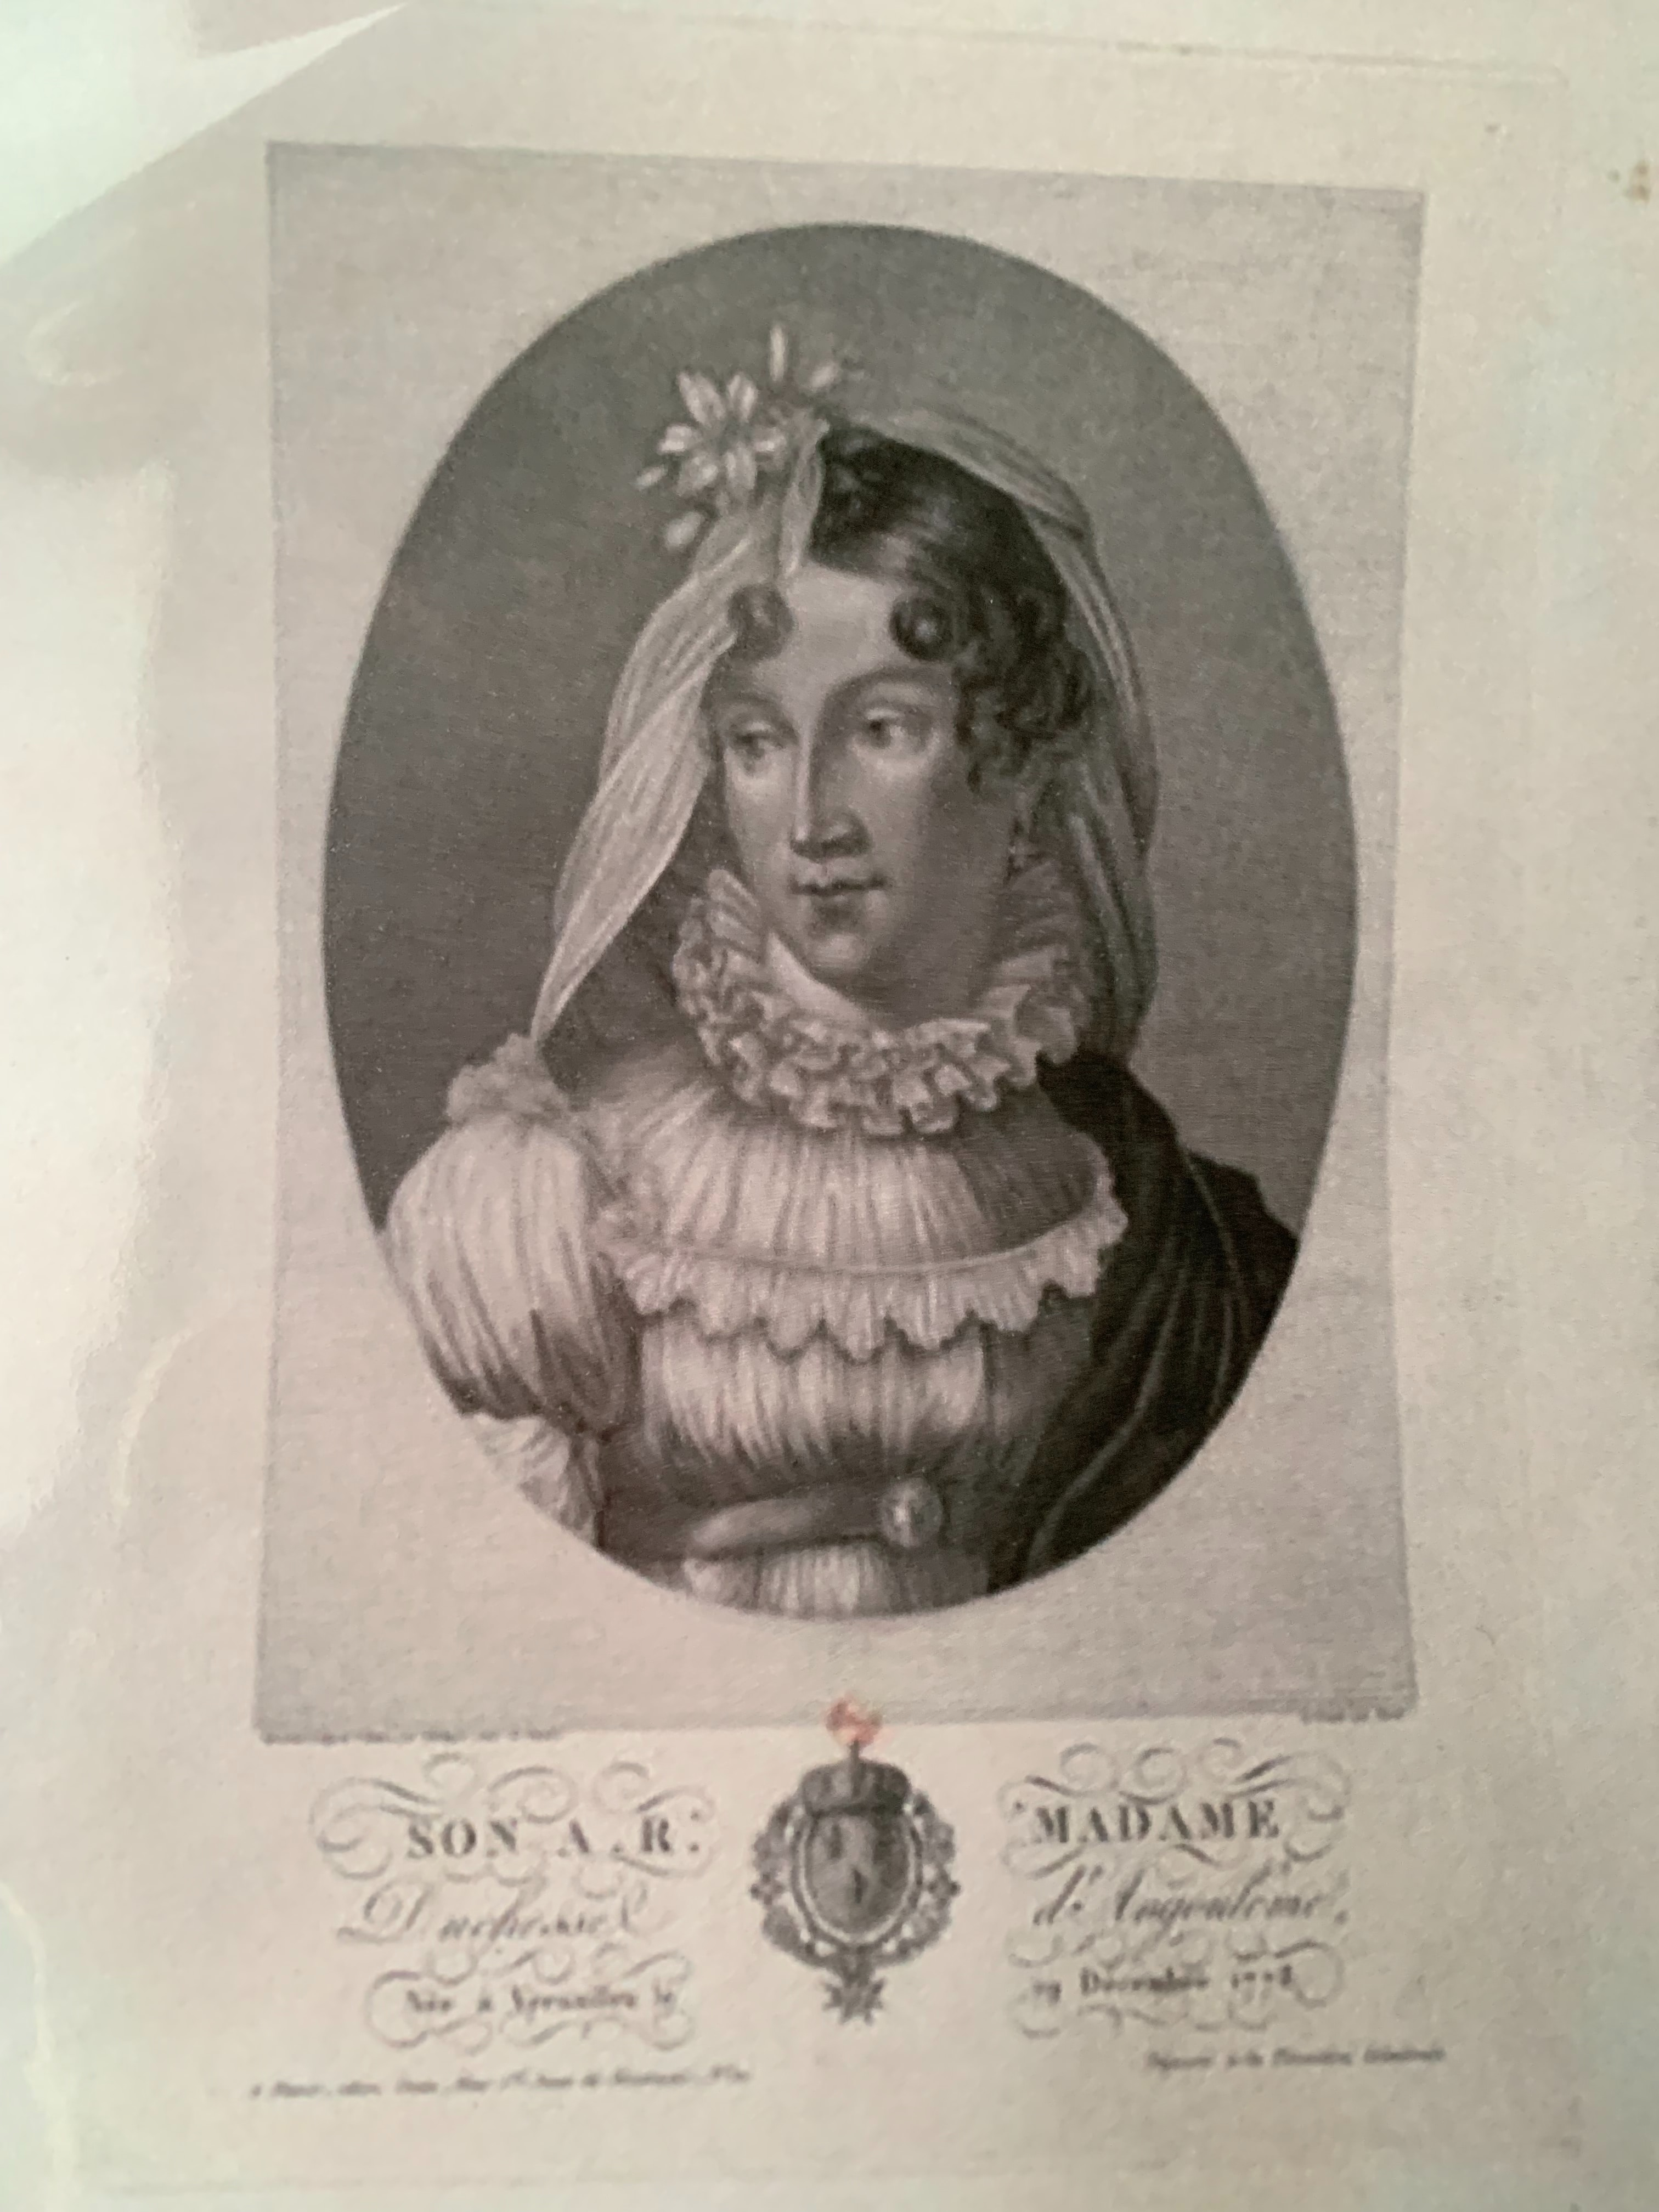 Madame d'Angeuleme